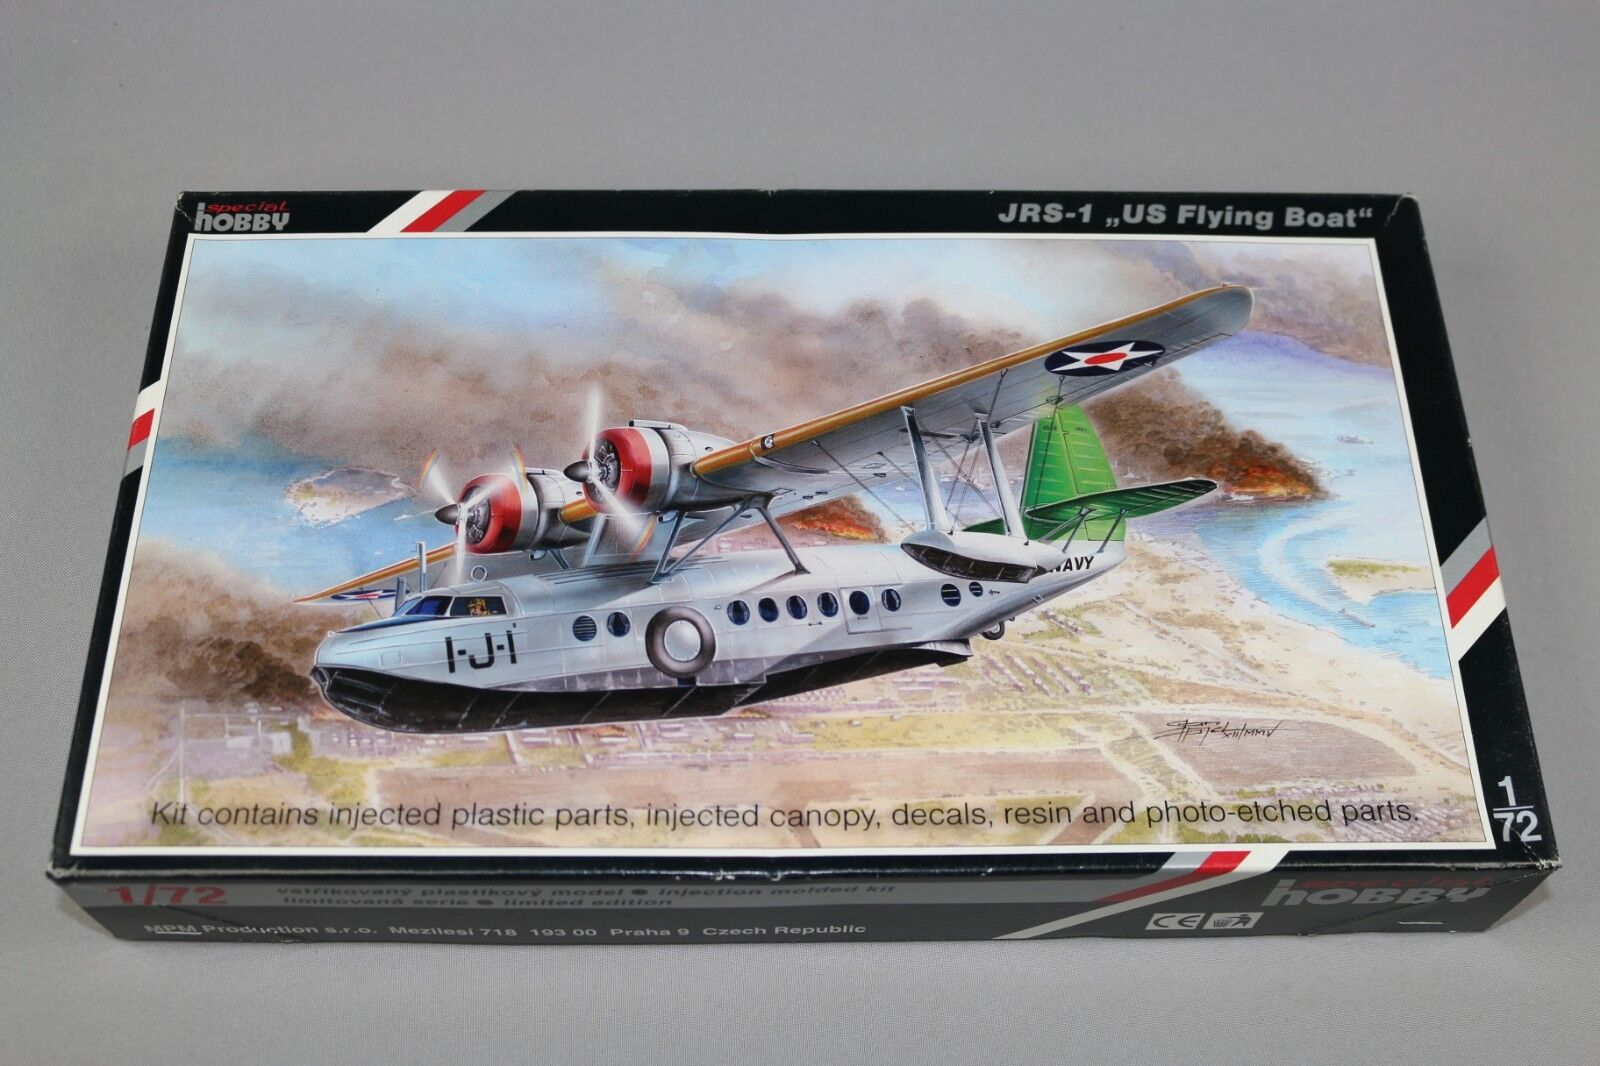 Zf647 Hobby Special 1 72 Model Aircraft Sh72111 Jrs-1 Us Flying Boat